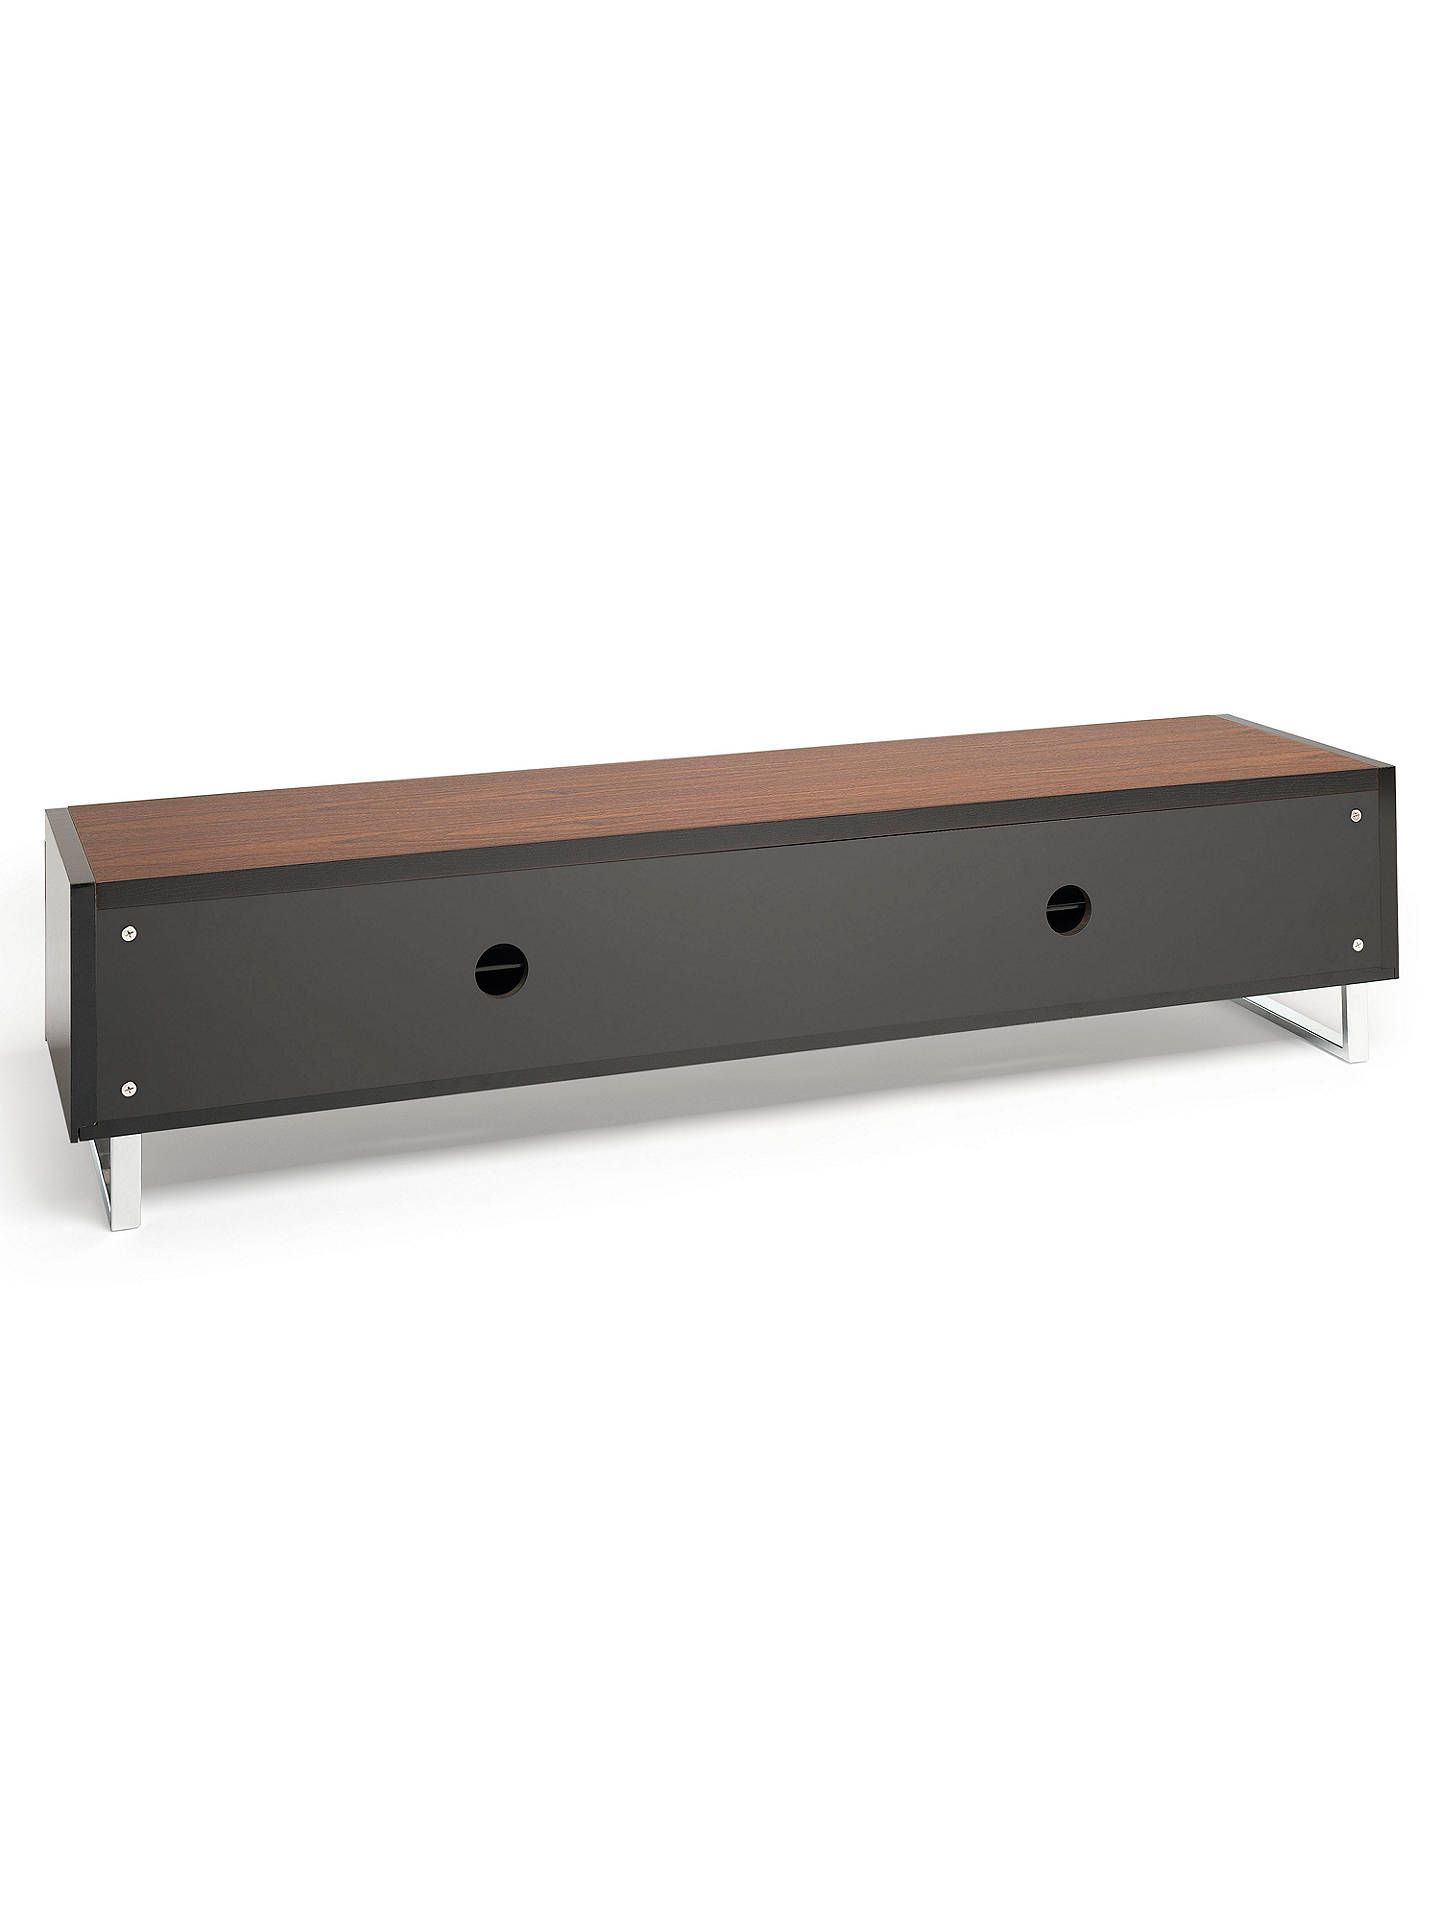 "Buy Techlink Panorama PM160 TV Stand for TVs up to 80"" with Double Sided Top, Walnut/Black Online at johnlewis.com"